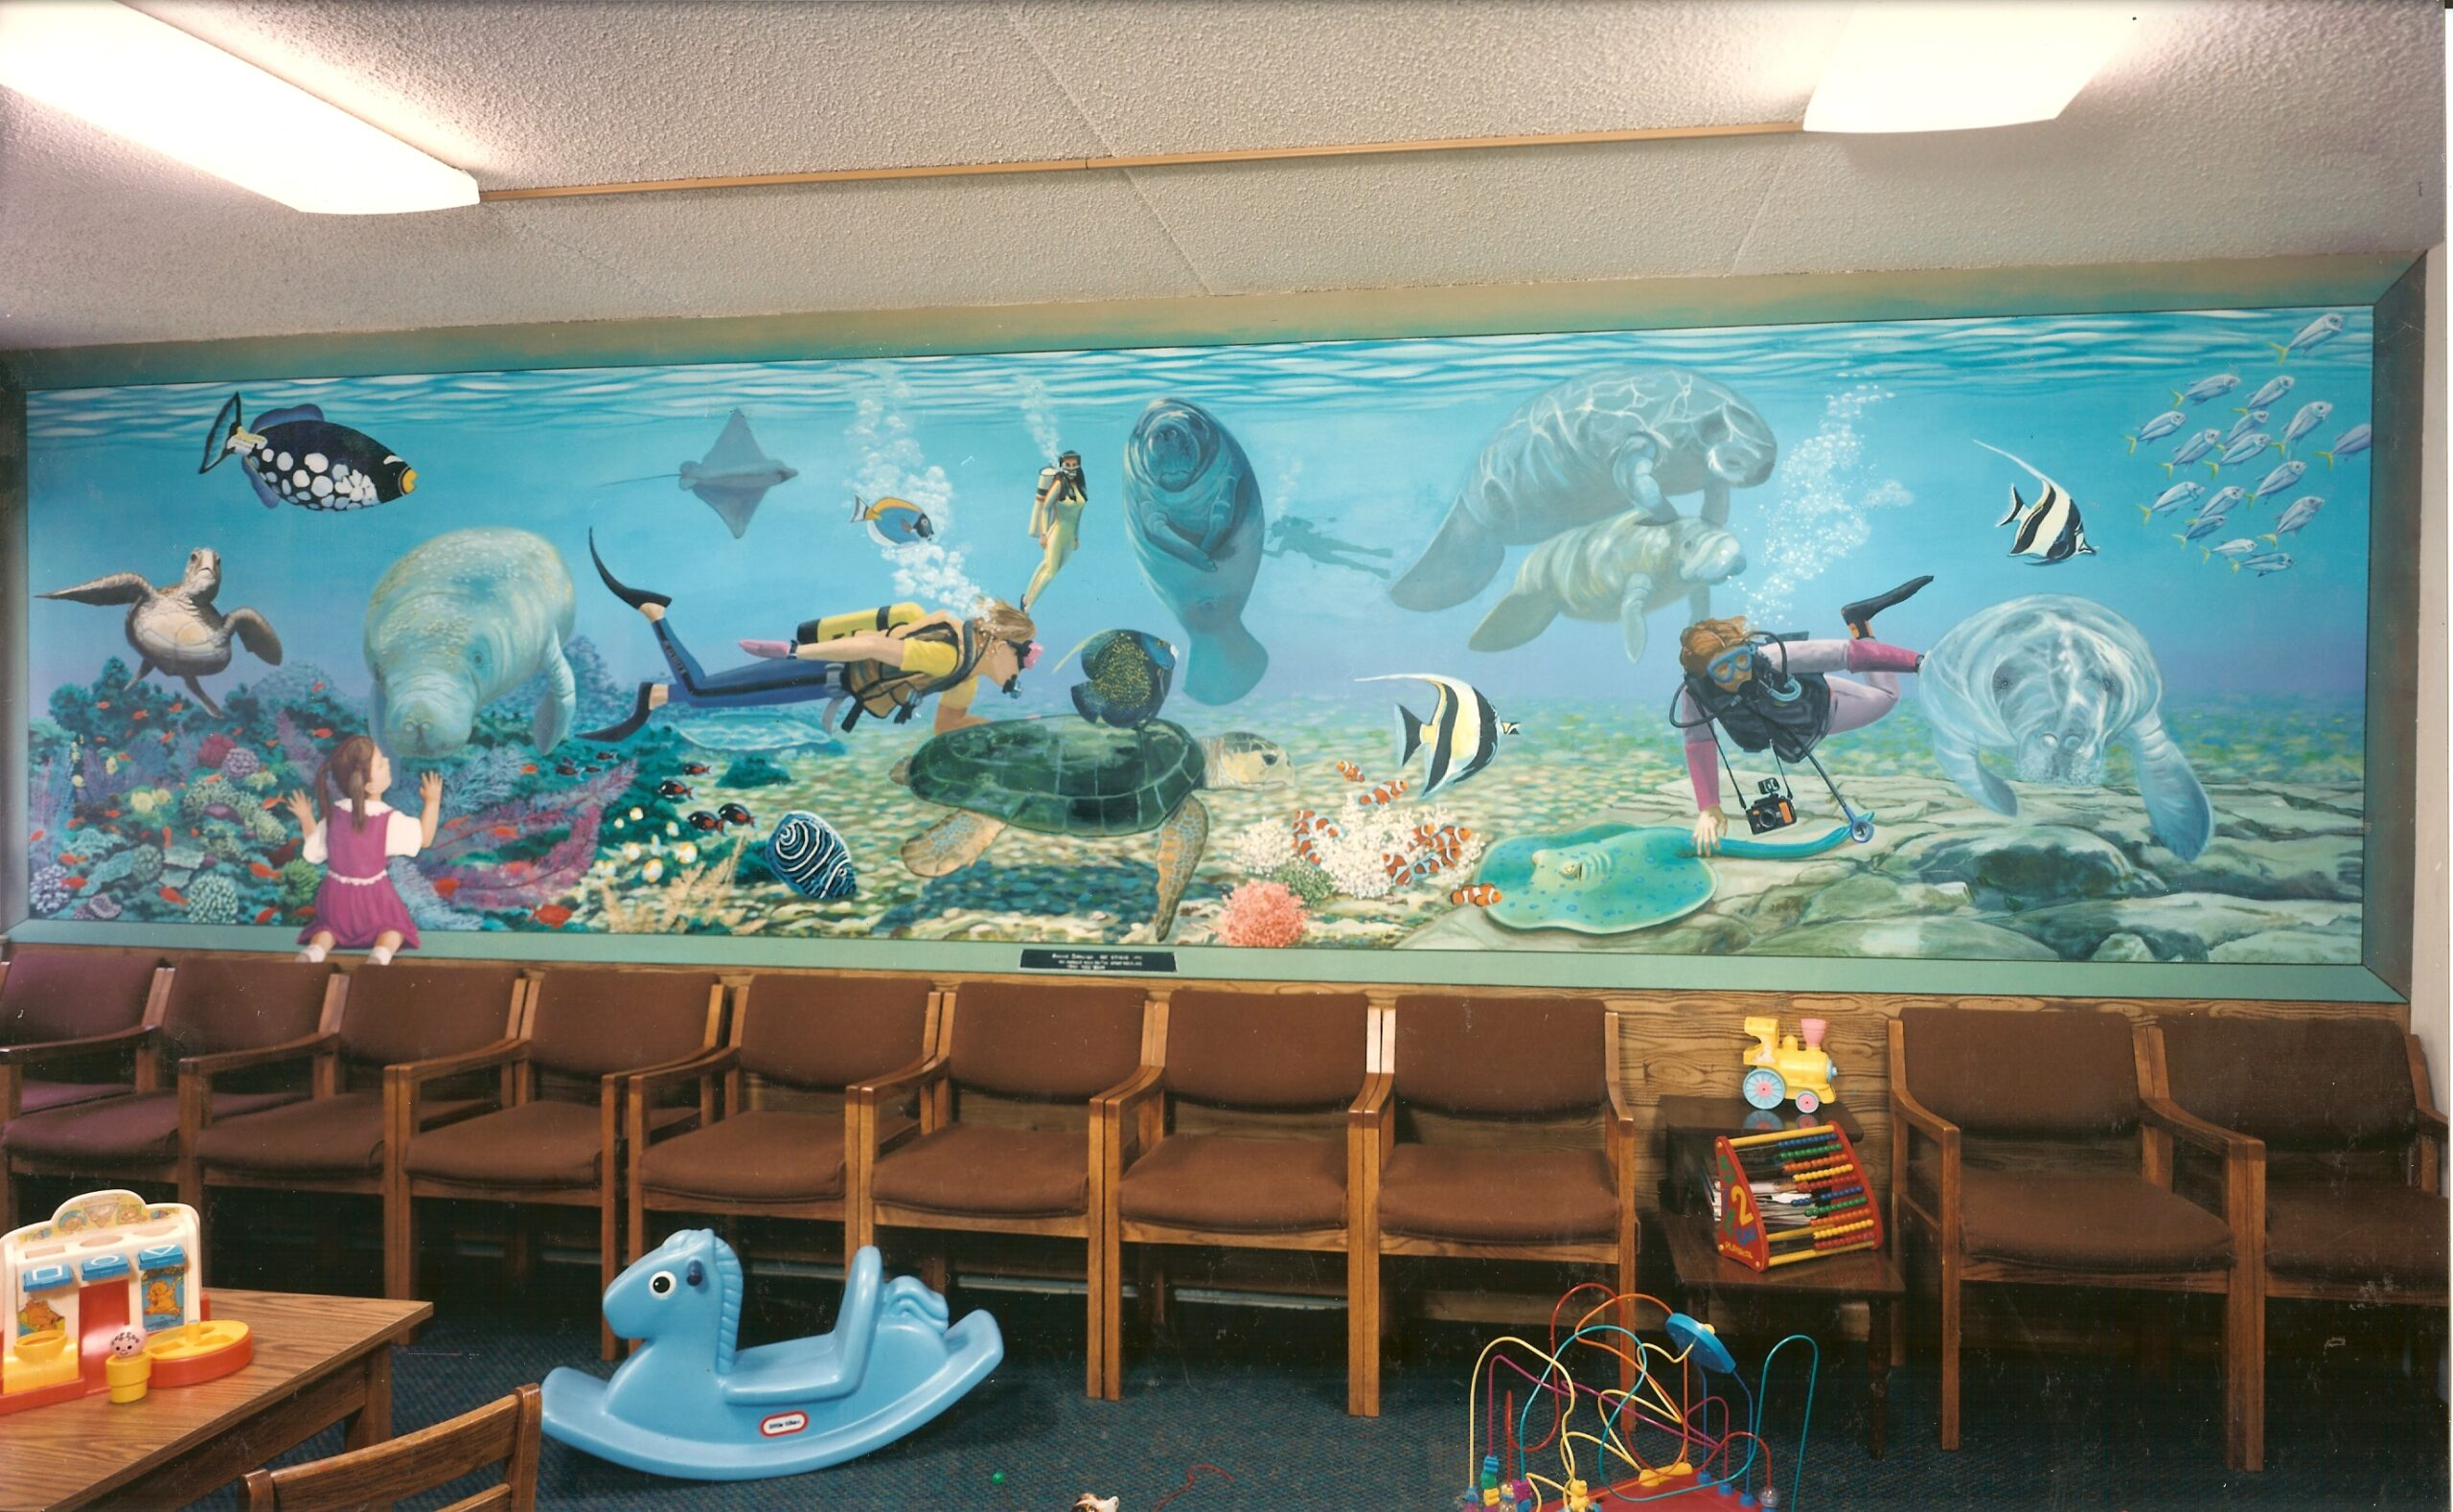 Bonnie siracusa murals fine art for Aquarium mural